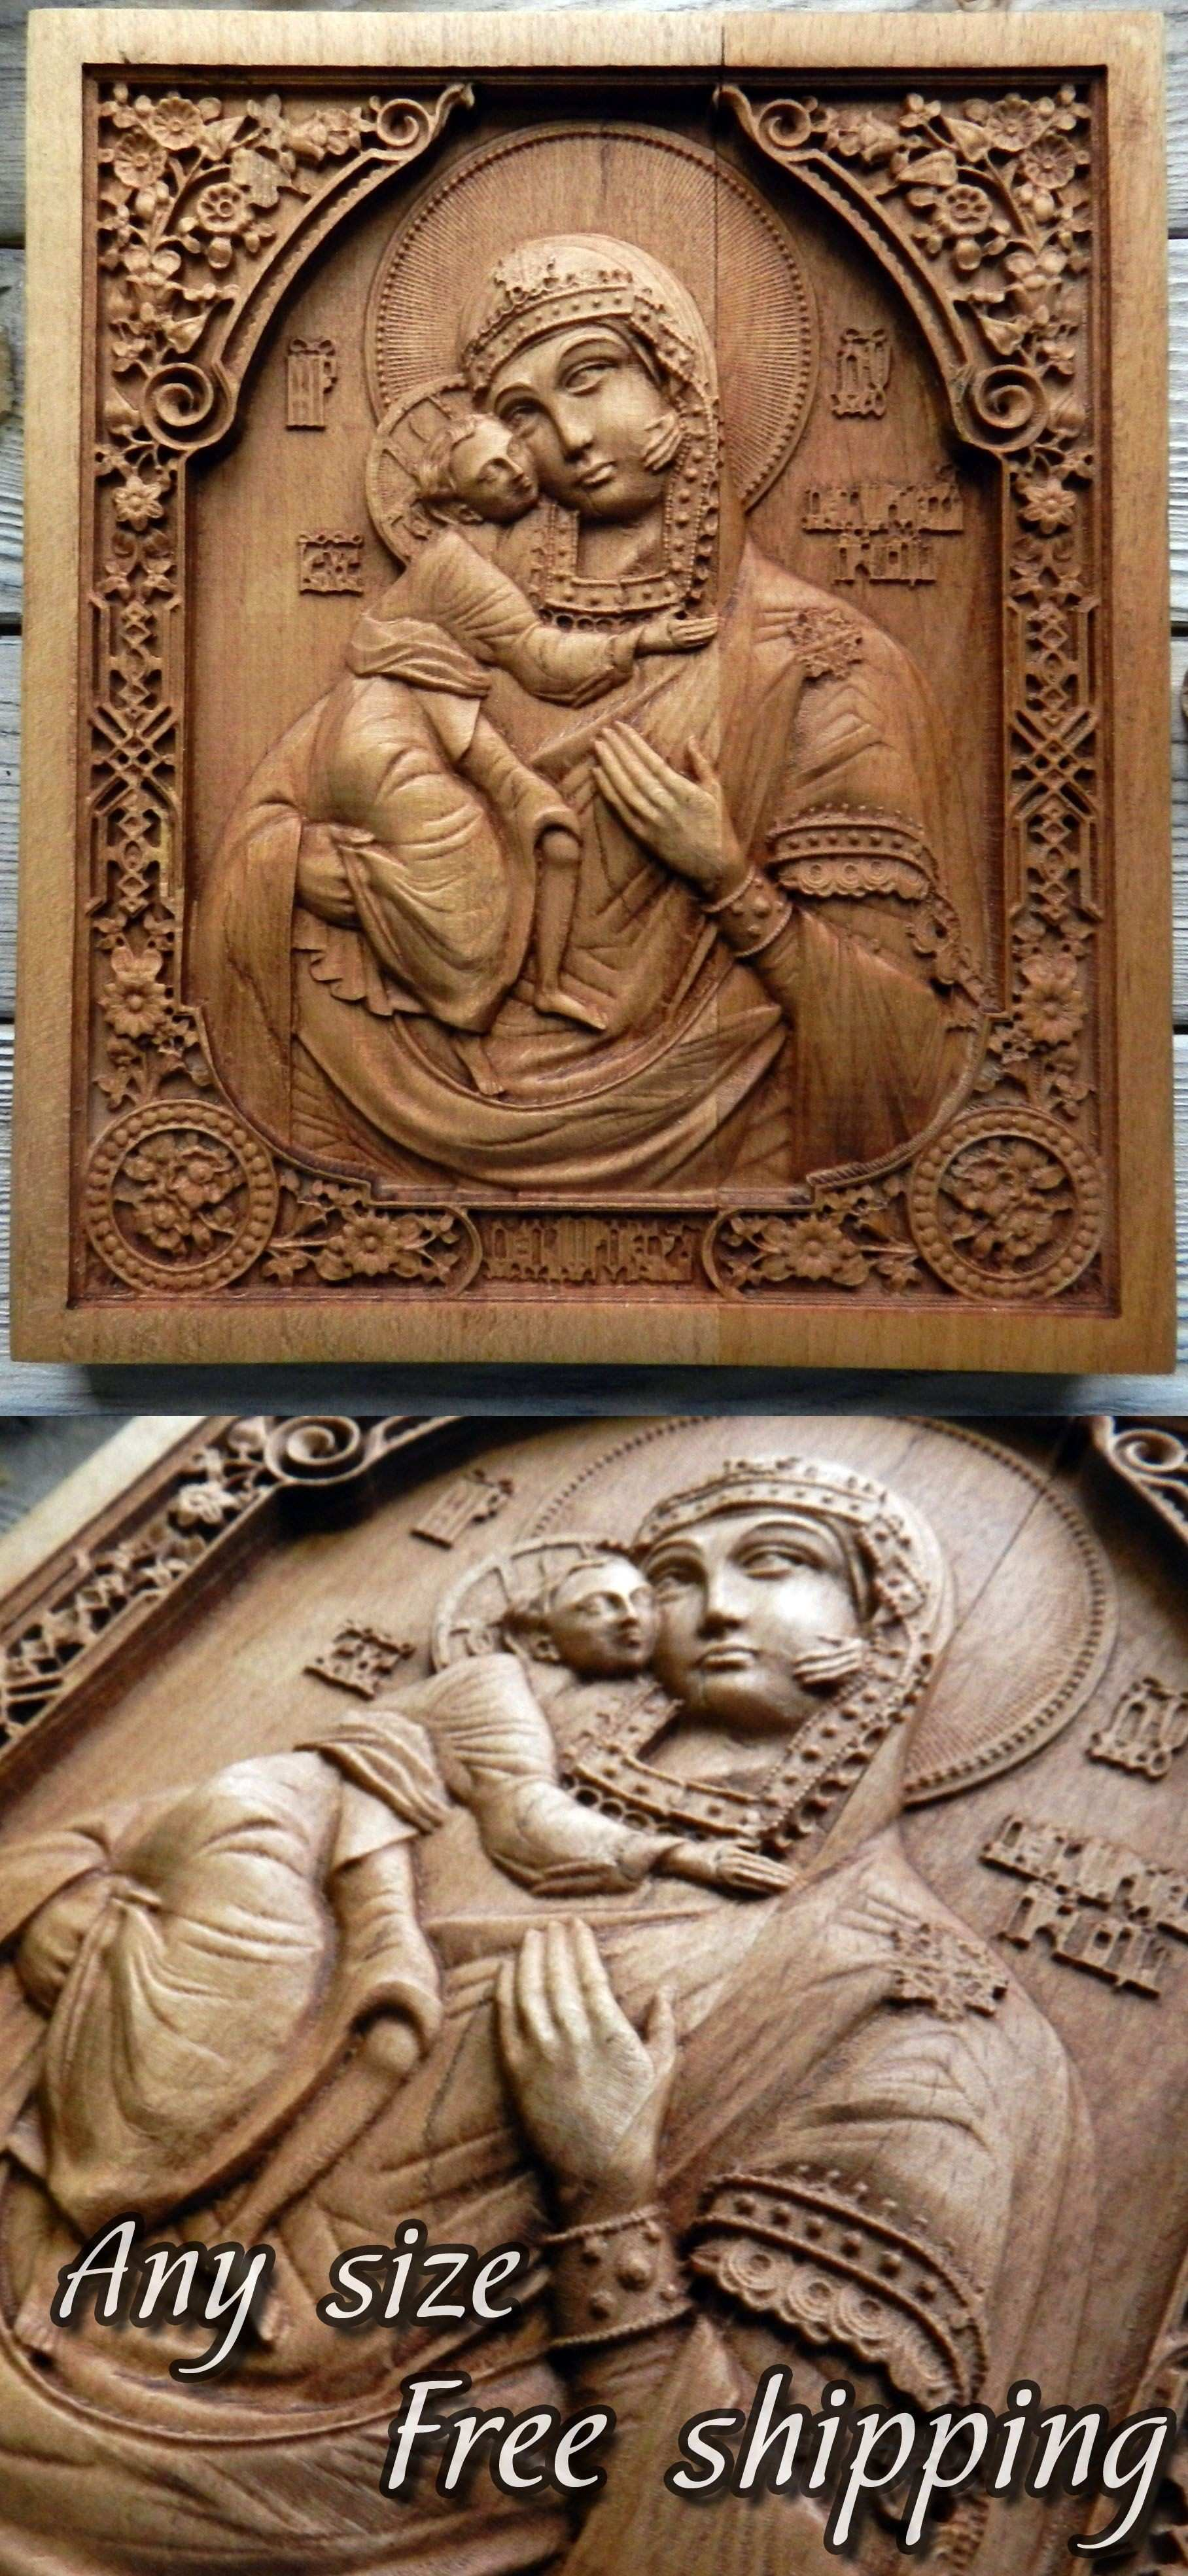 Christian wall decor art Virgin Mary wood carving religious icon